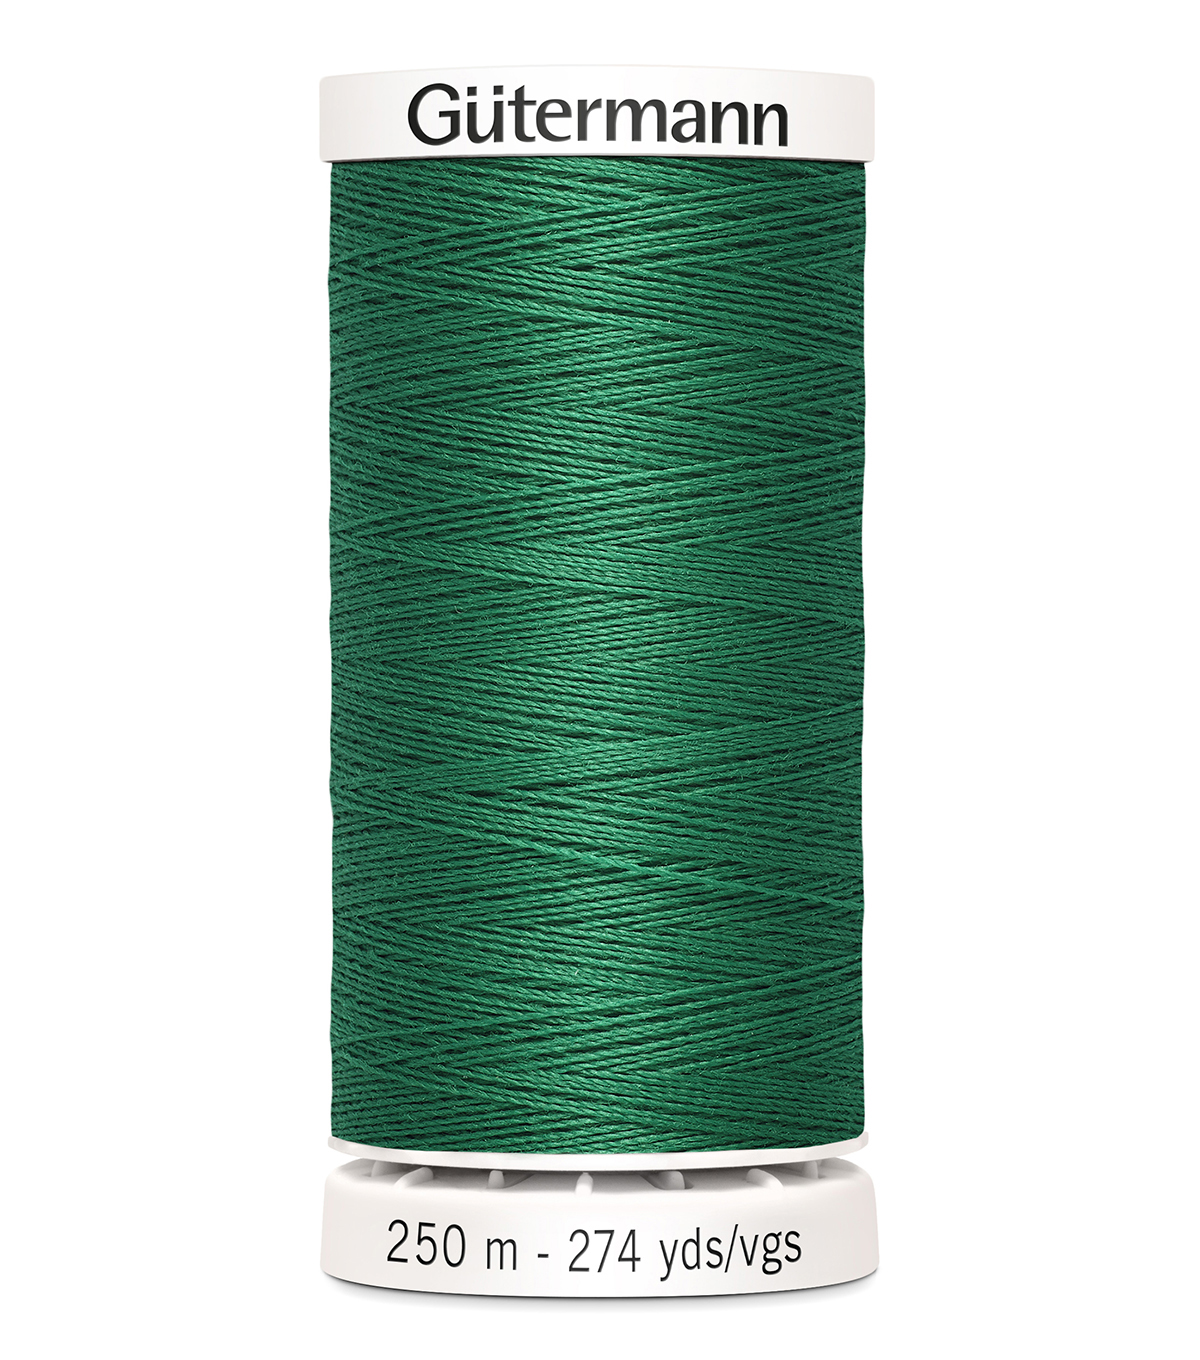 Gutermann Sew-All Thread 273Yds-(600 & 700 series) Cool Tones , Grass Green #752